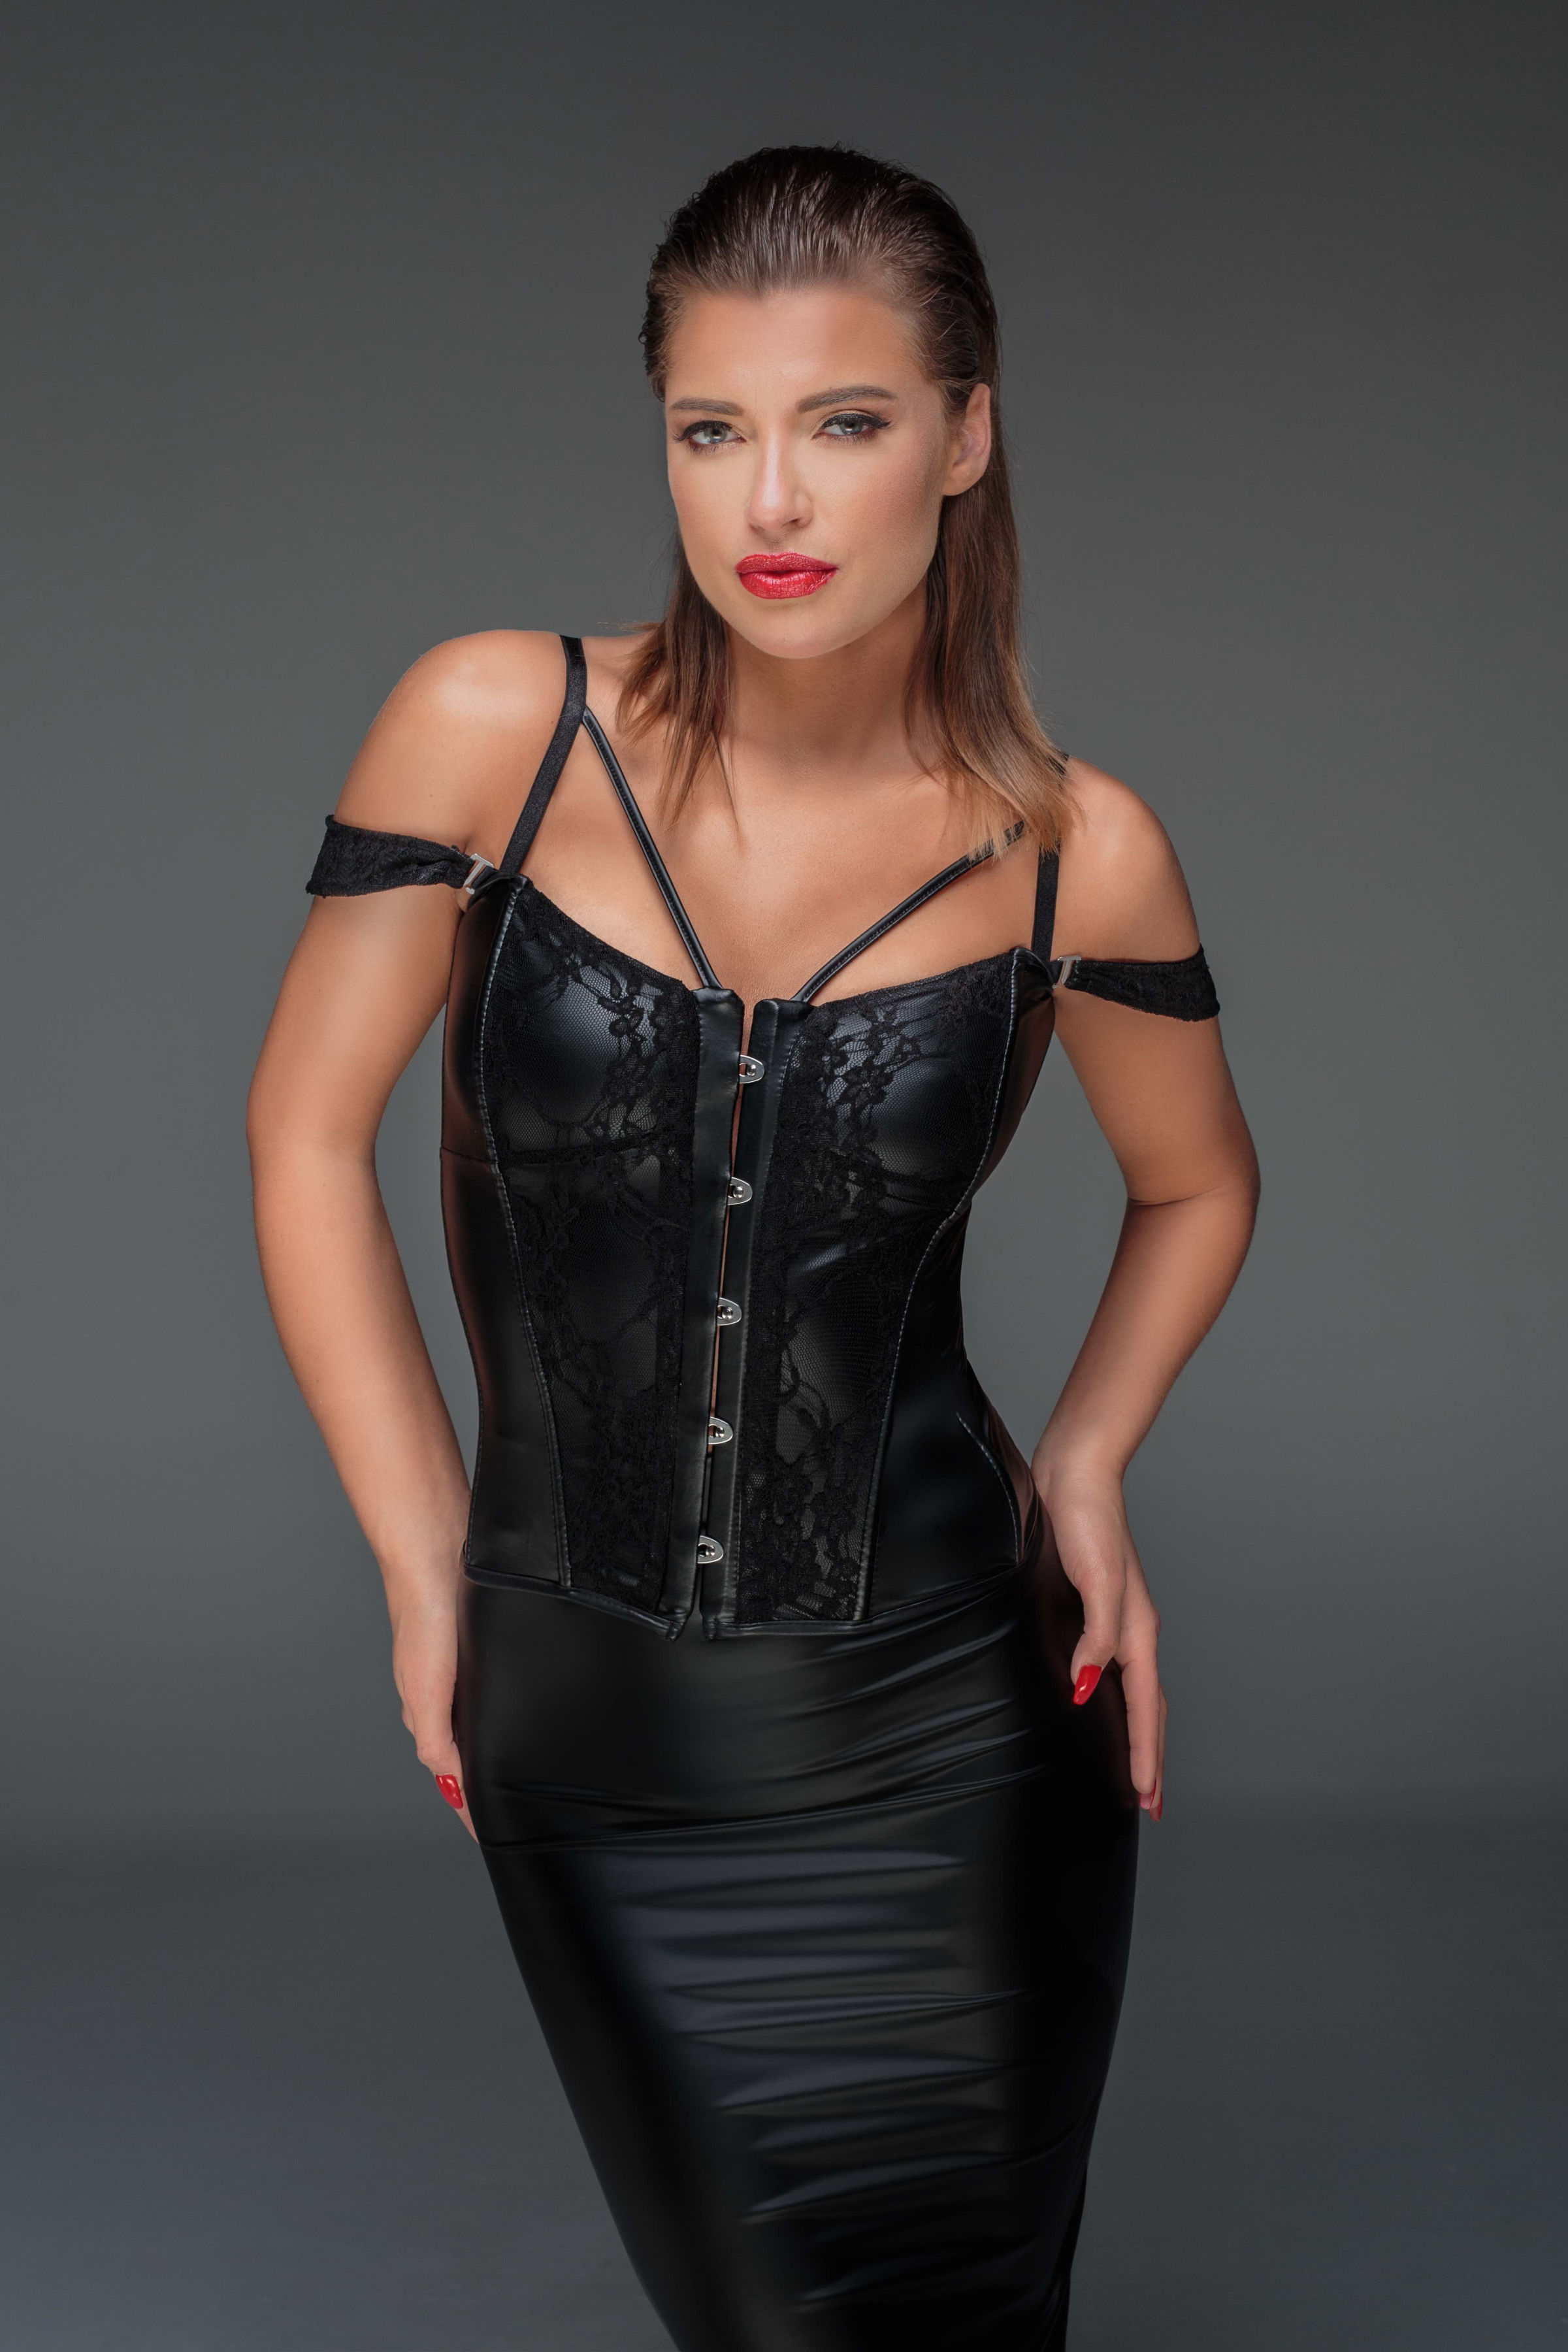 Noir Handmade F159 Corset with Lace and Powerwetlook with Detachable Straps L